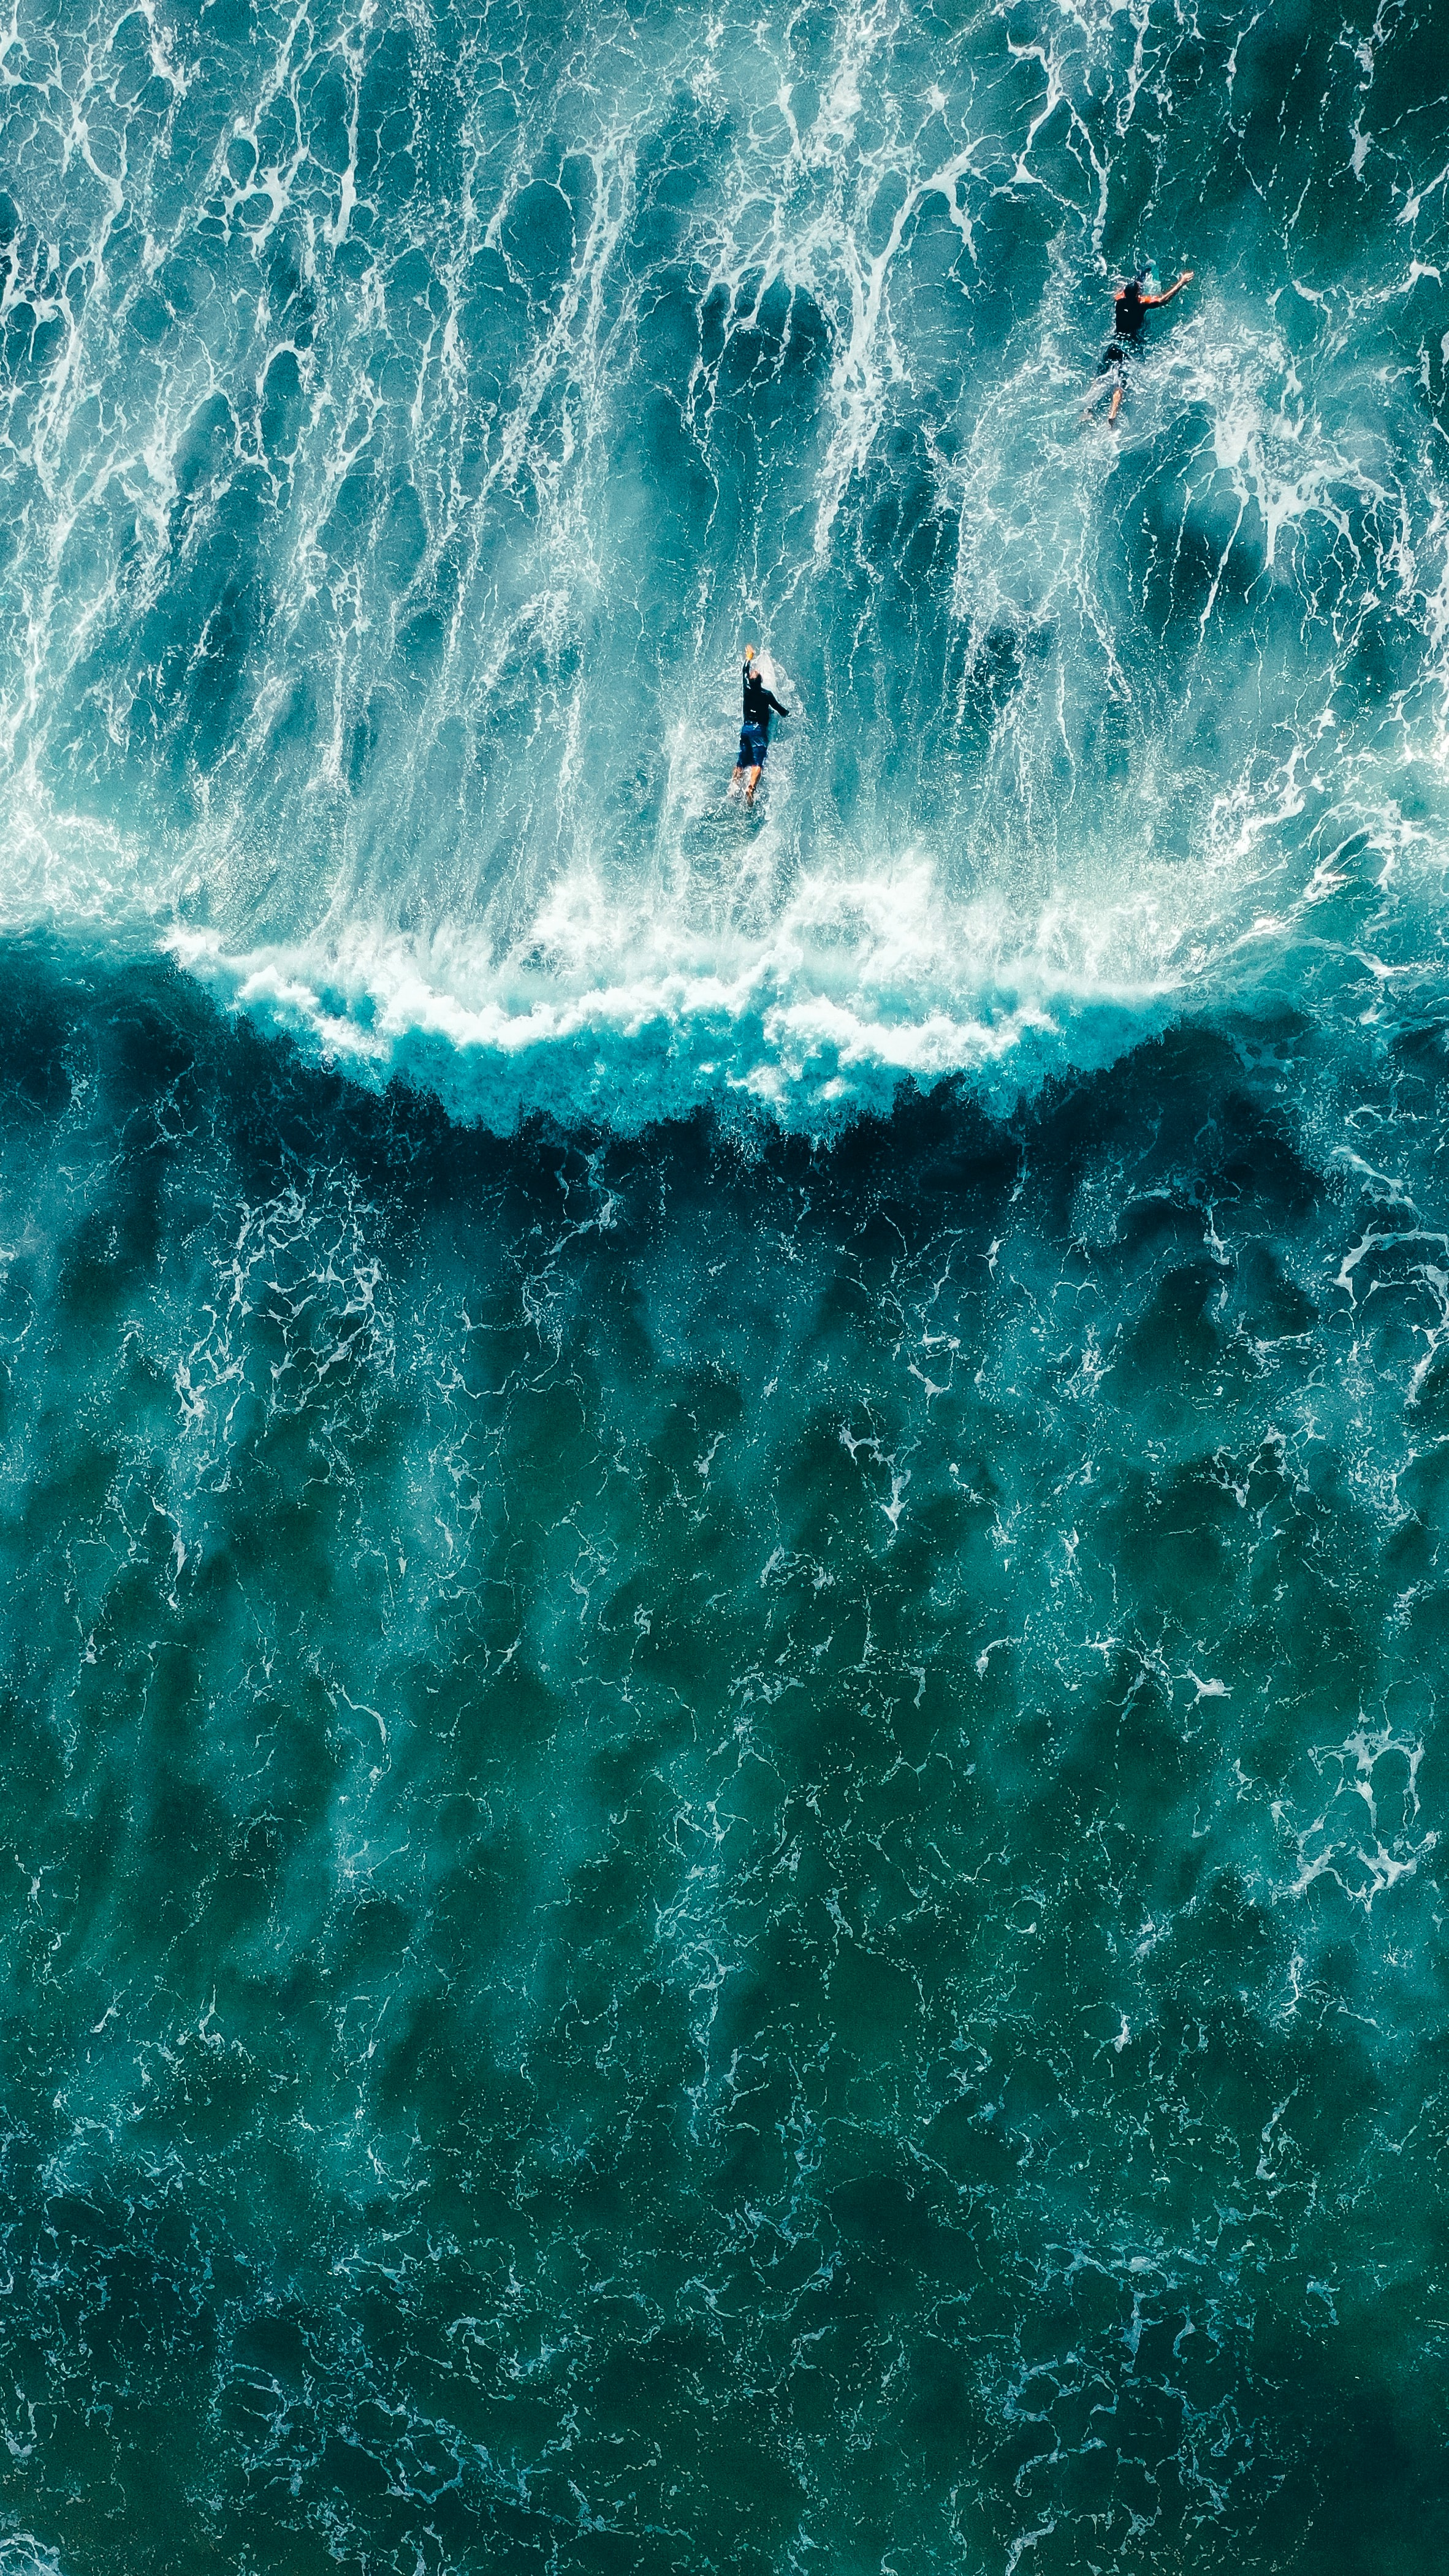 A bird's eye view of a wave and surfers